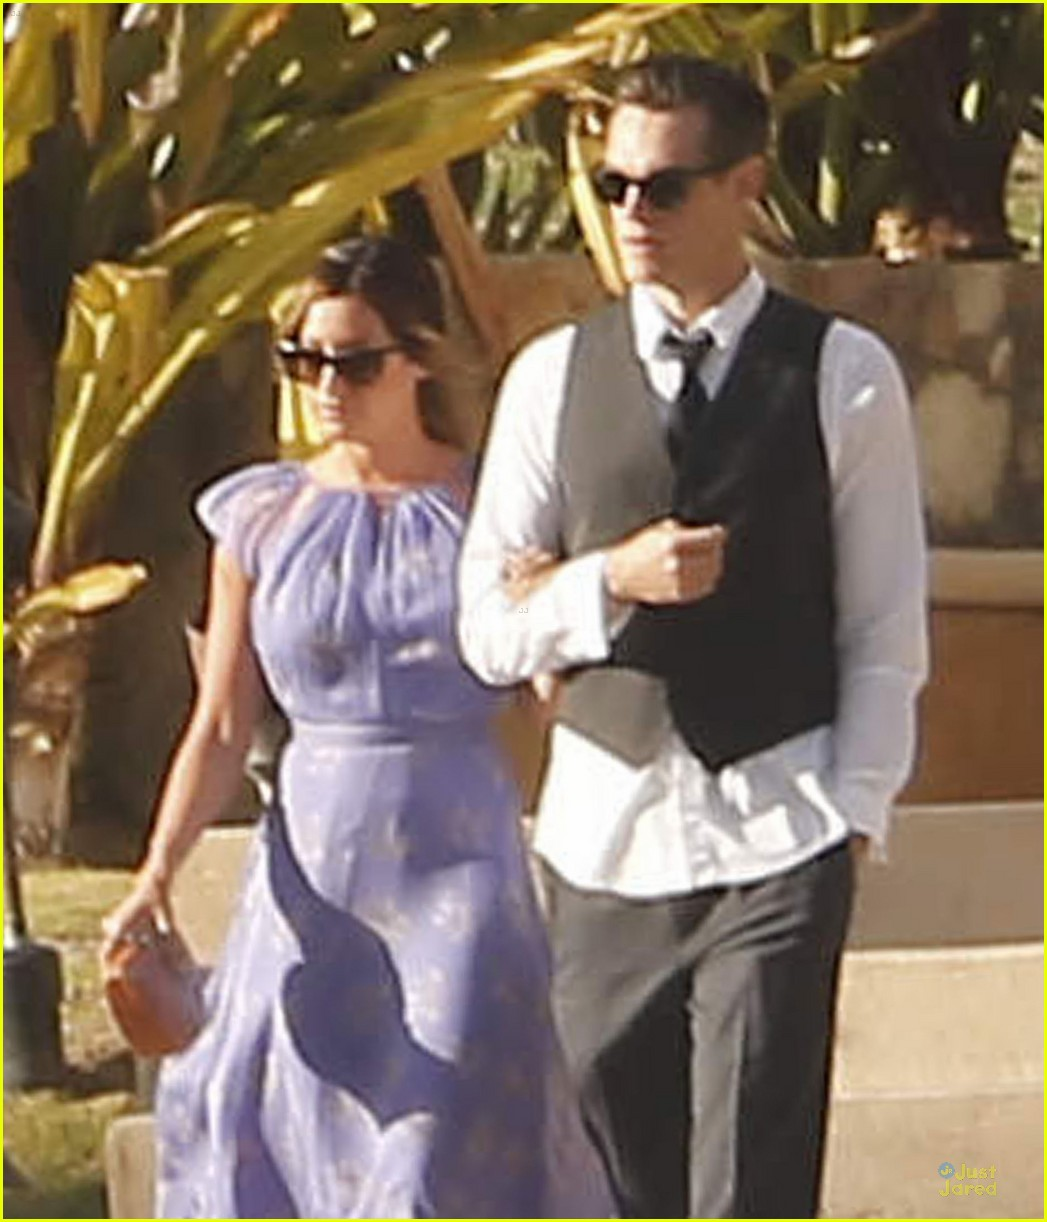 Ashley tisdale christopher french wedding in mexico photo ashley tisdale christopher french wedding in mexico photo 554632 photo gallery just jared jr ombrellifo Choice Image